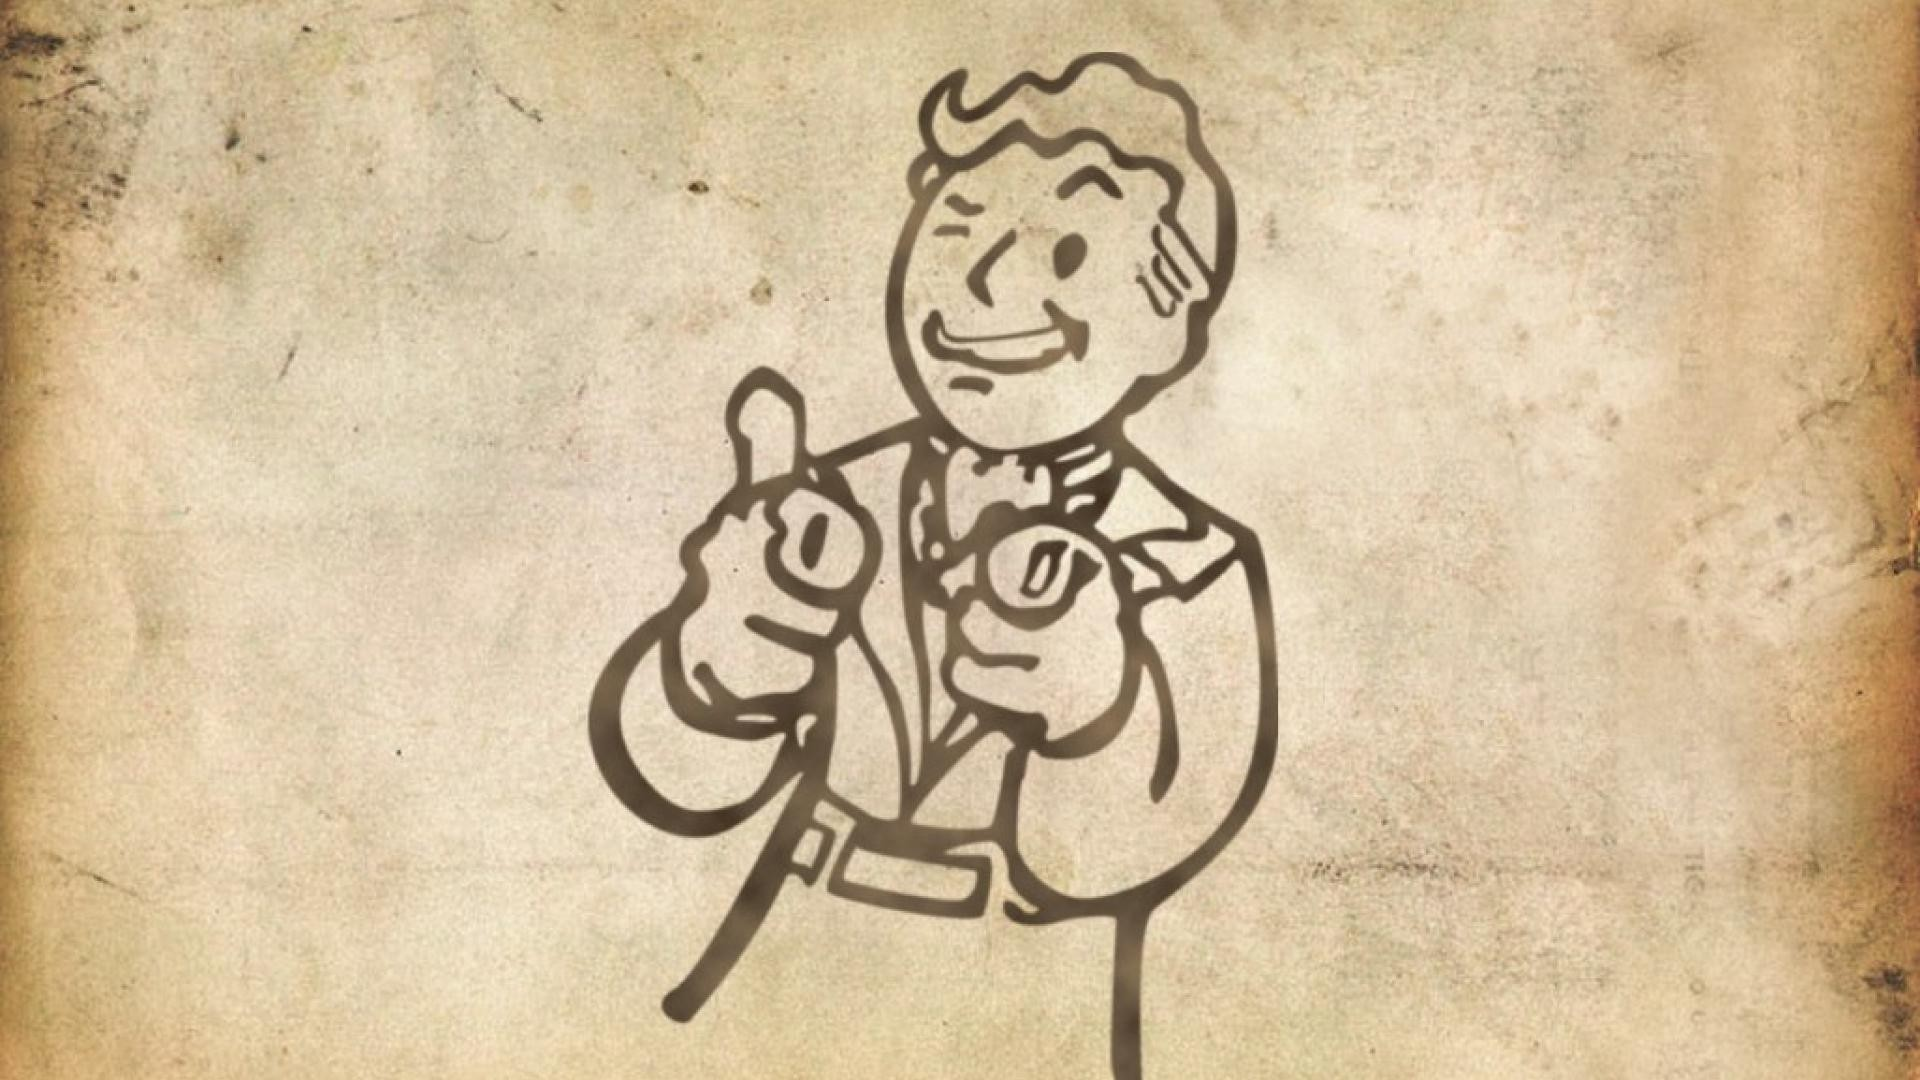 Pip Boy Wallpaper Download Free Beautiful Hd Wallpapers For